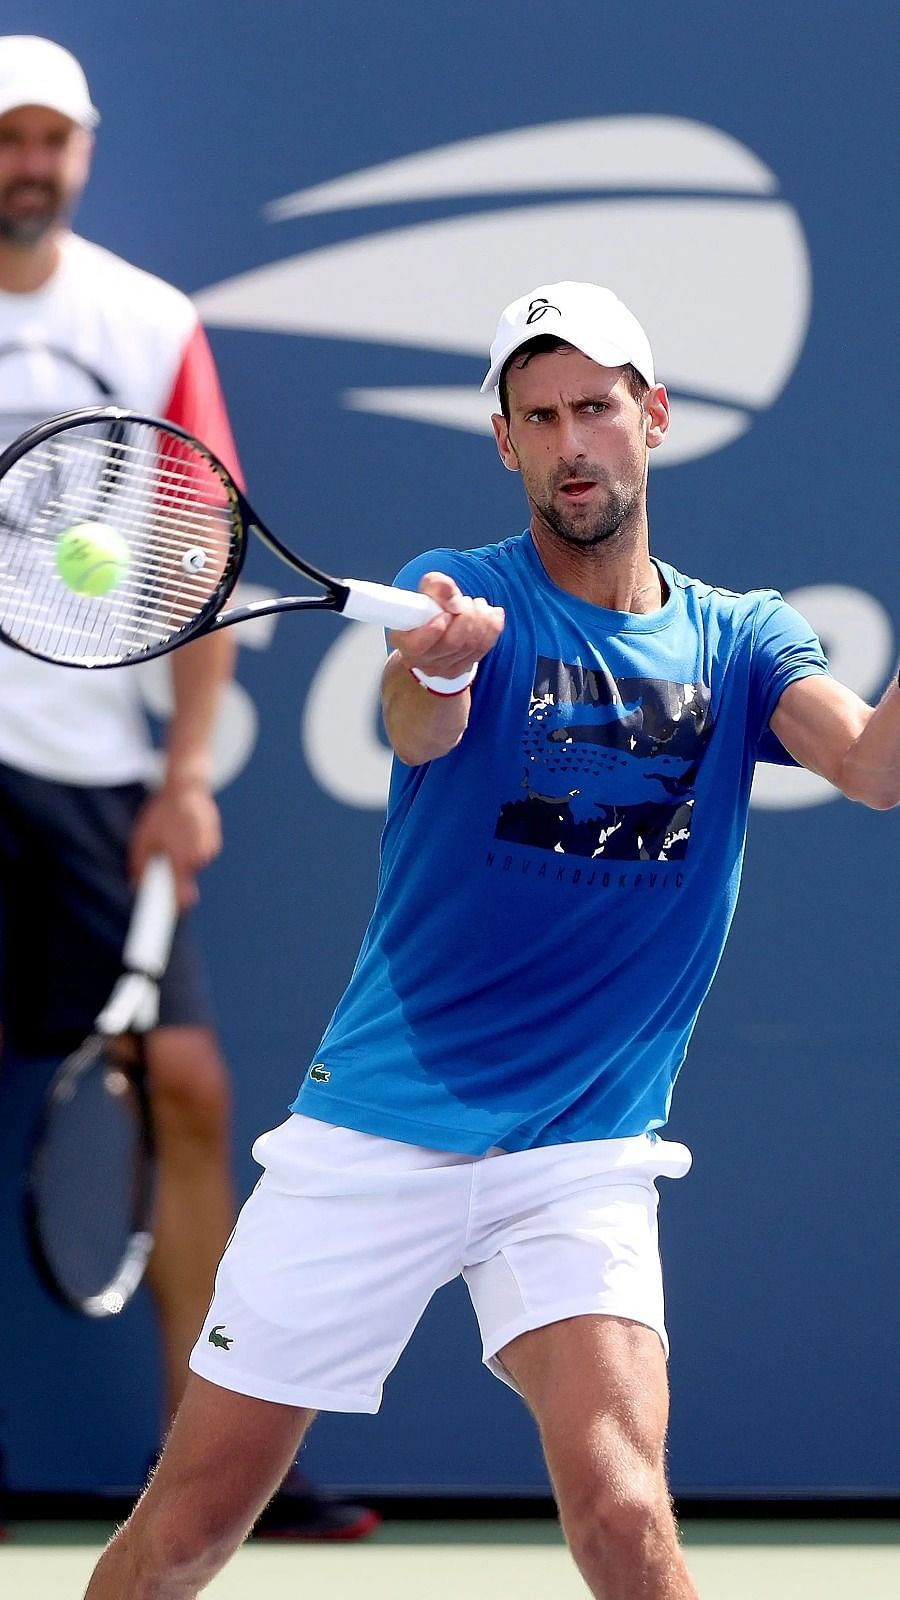 We Can T Move Anywhere Without Security Novak Djokovic S Coach On Us Open Bubble